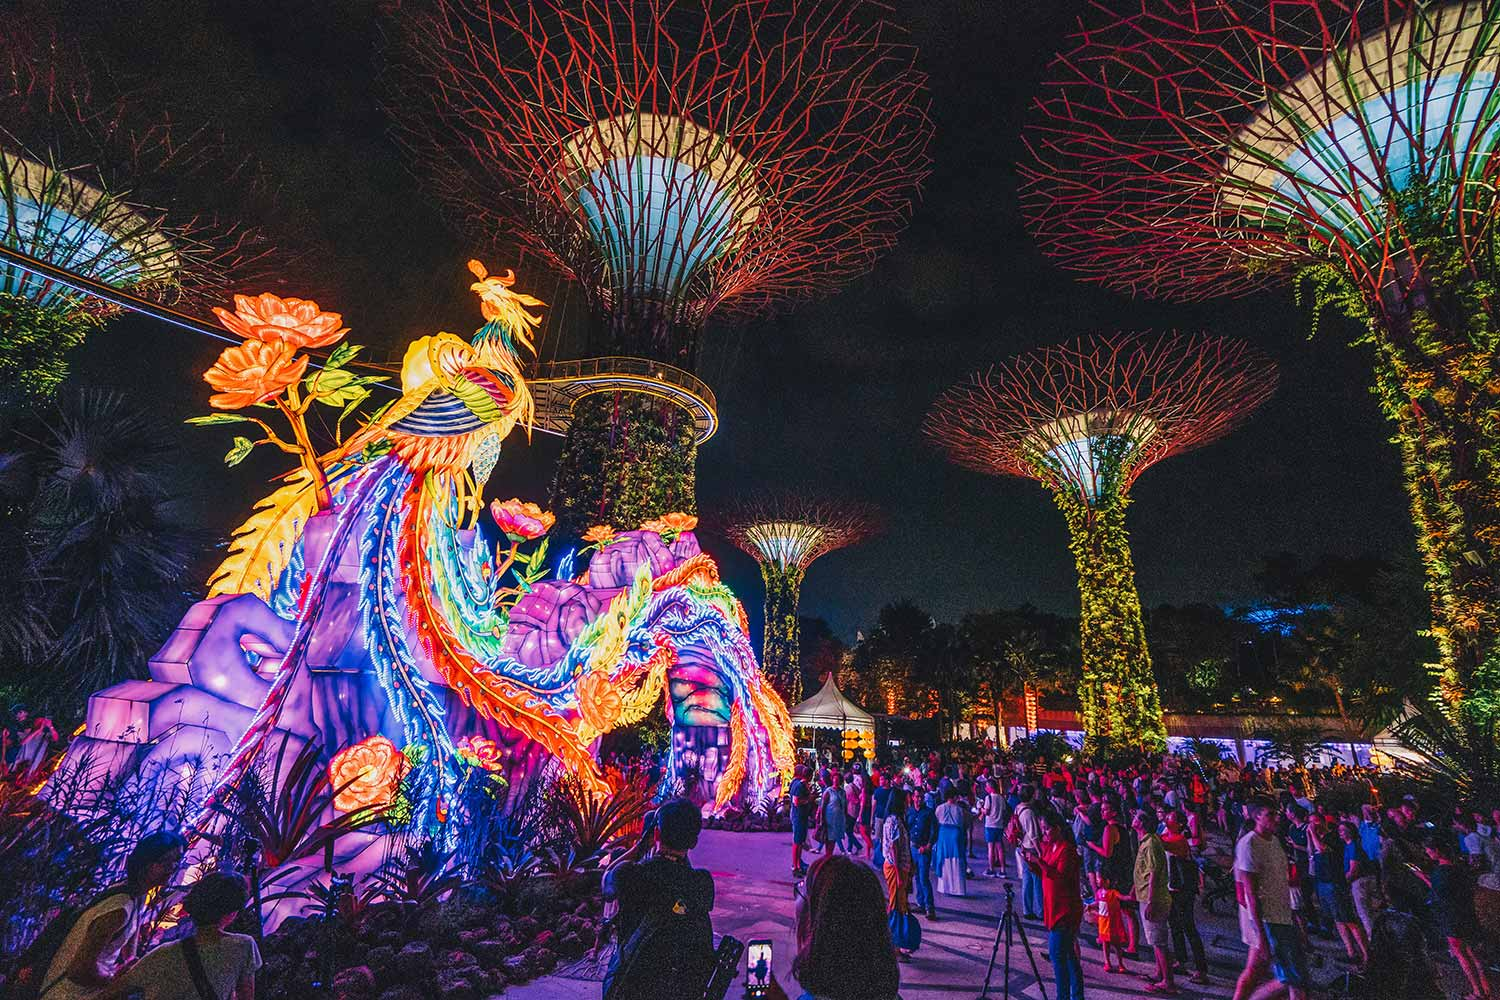 Celebrate Mid-Autumn Festival at Gardens by the Bay with Larger-than-Life Lanterns!